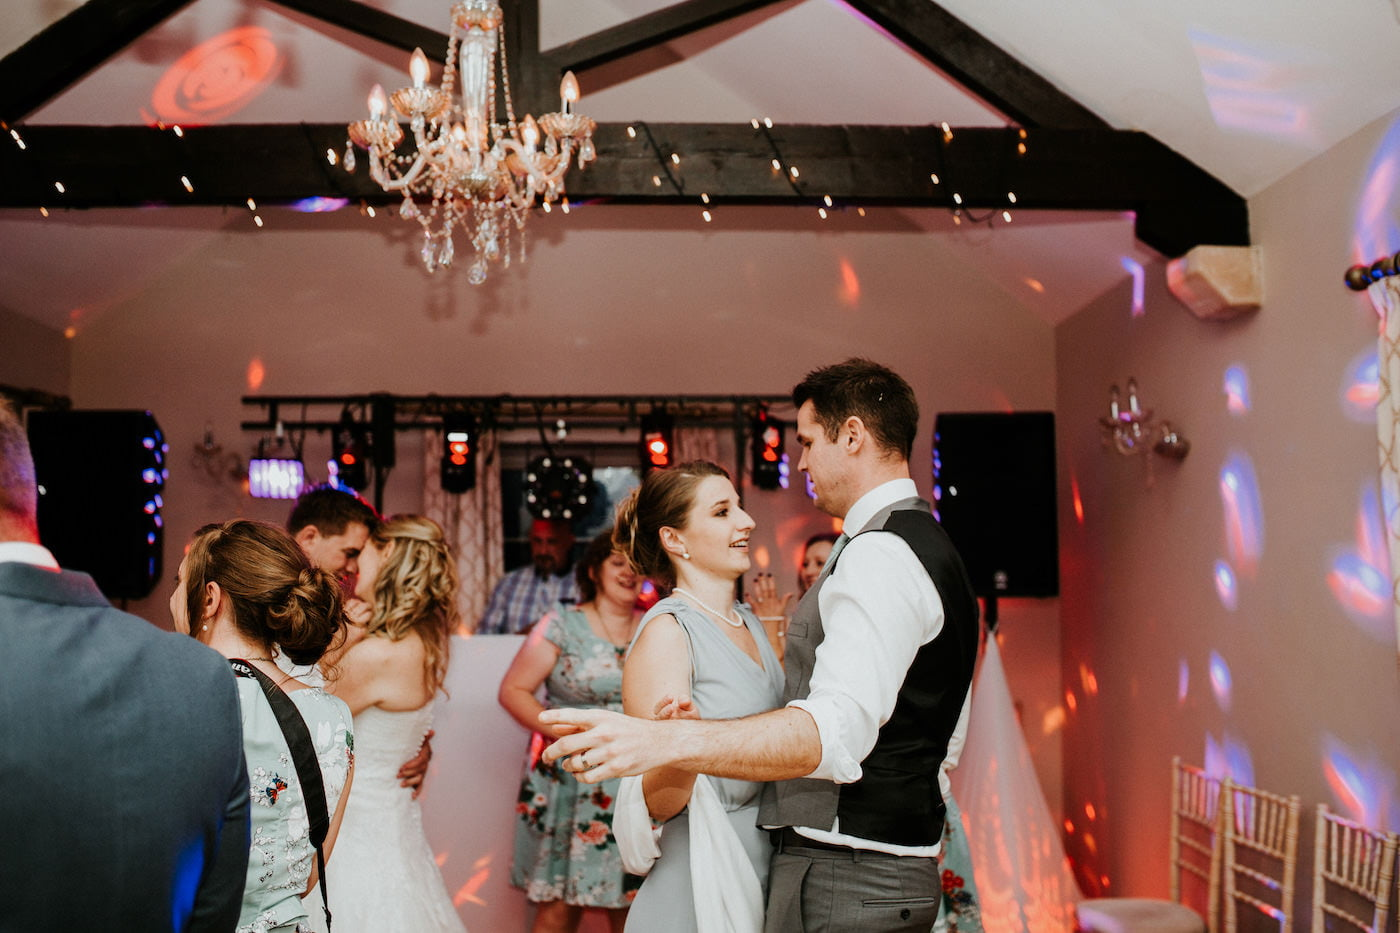 Alex and Jen, Widbrook Grange, Wiltshire 28